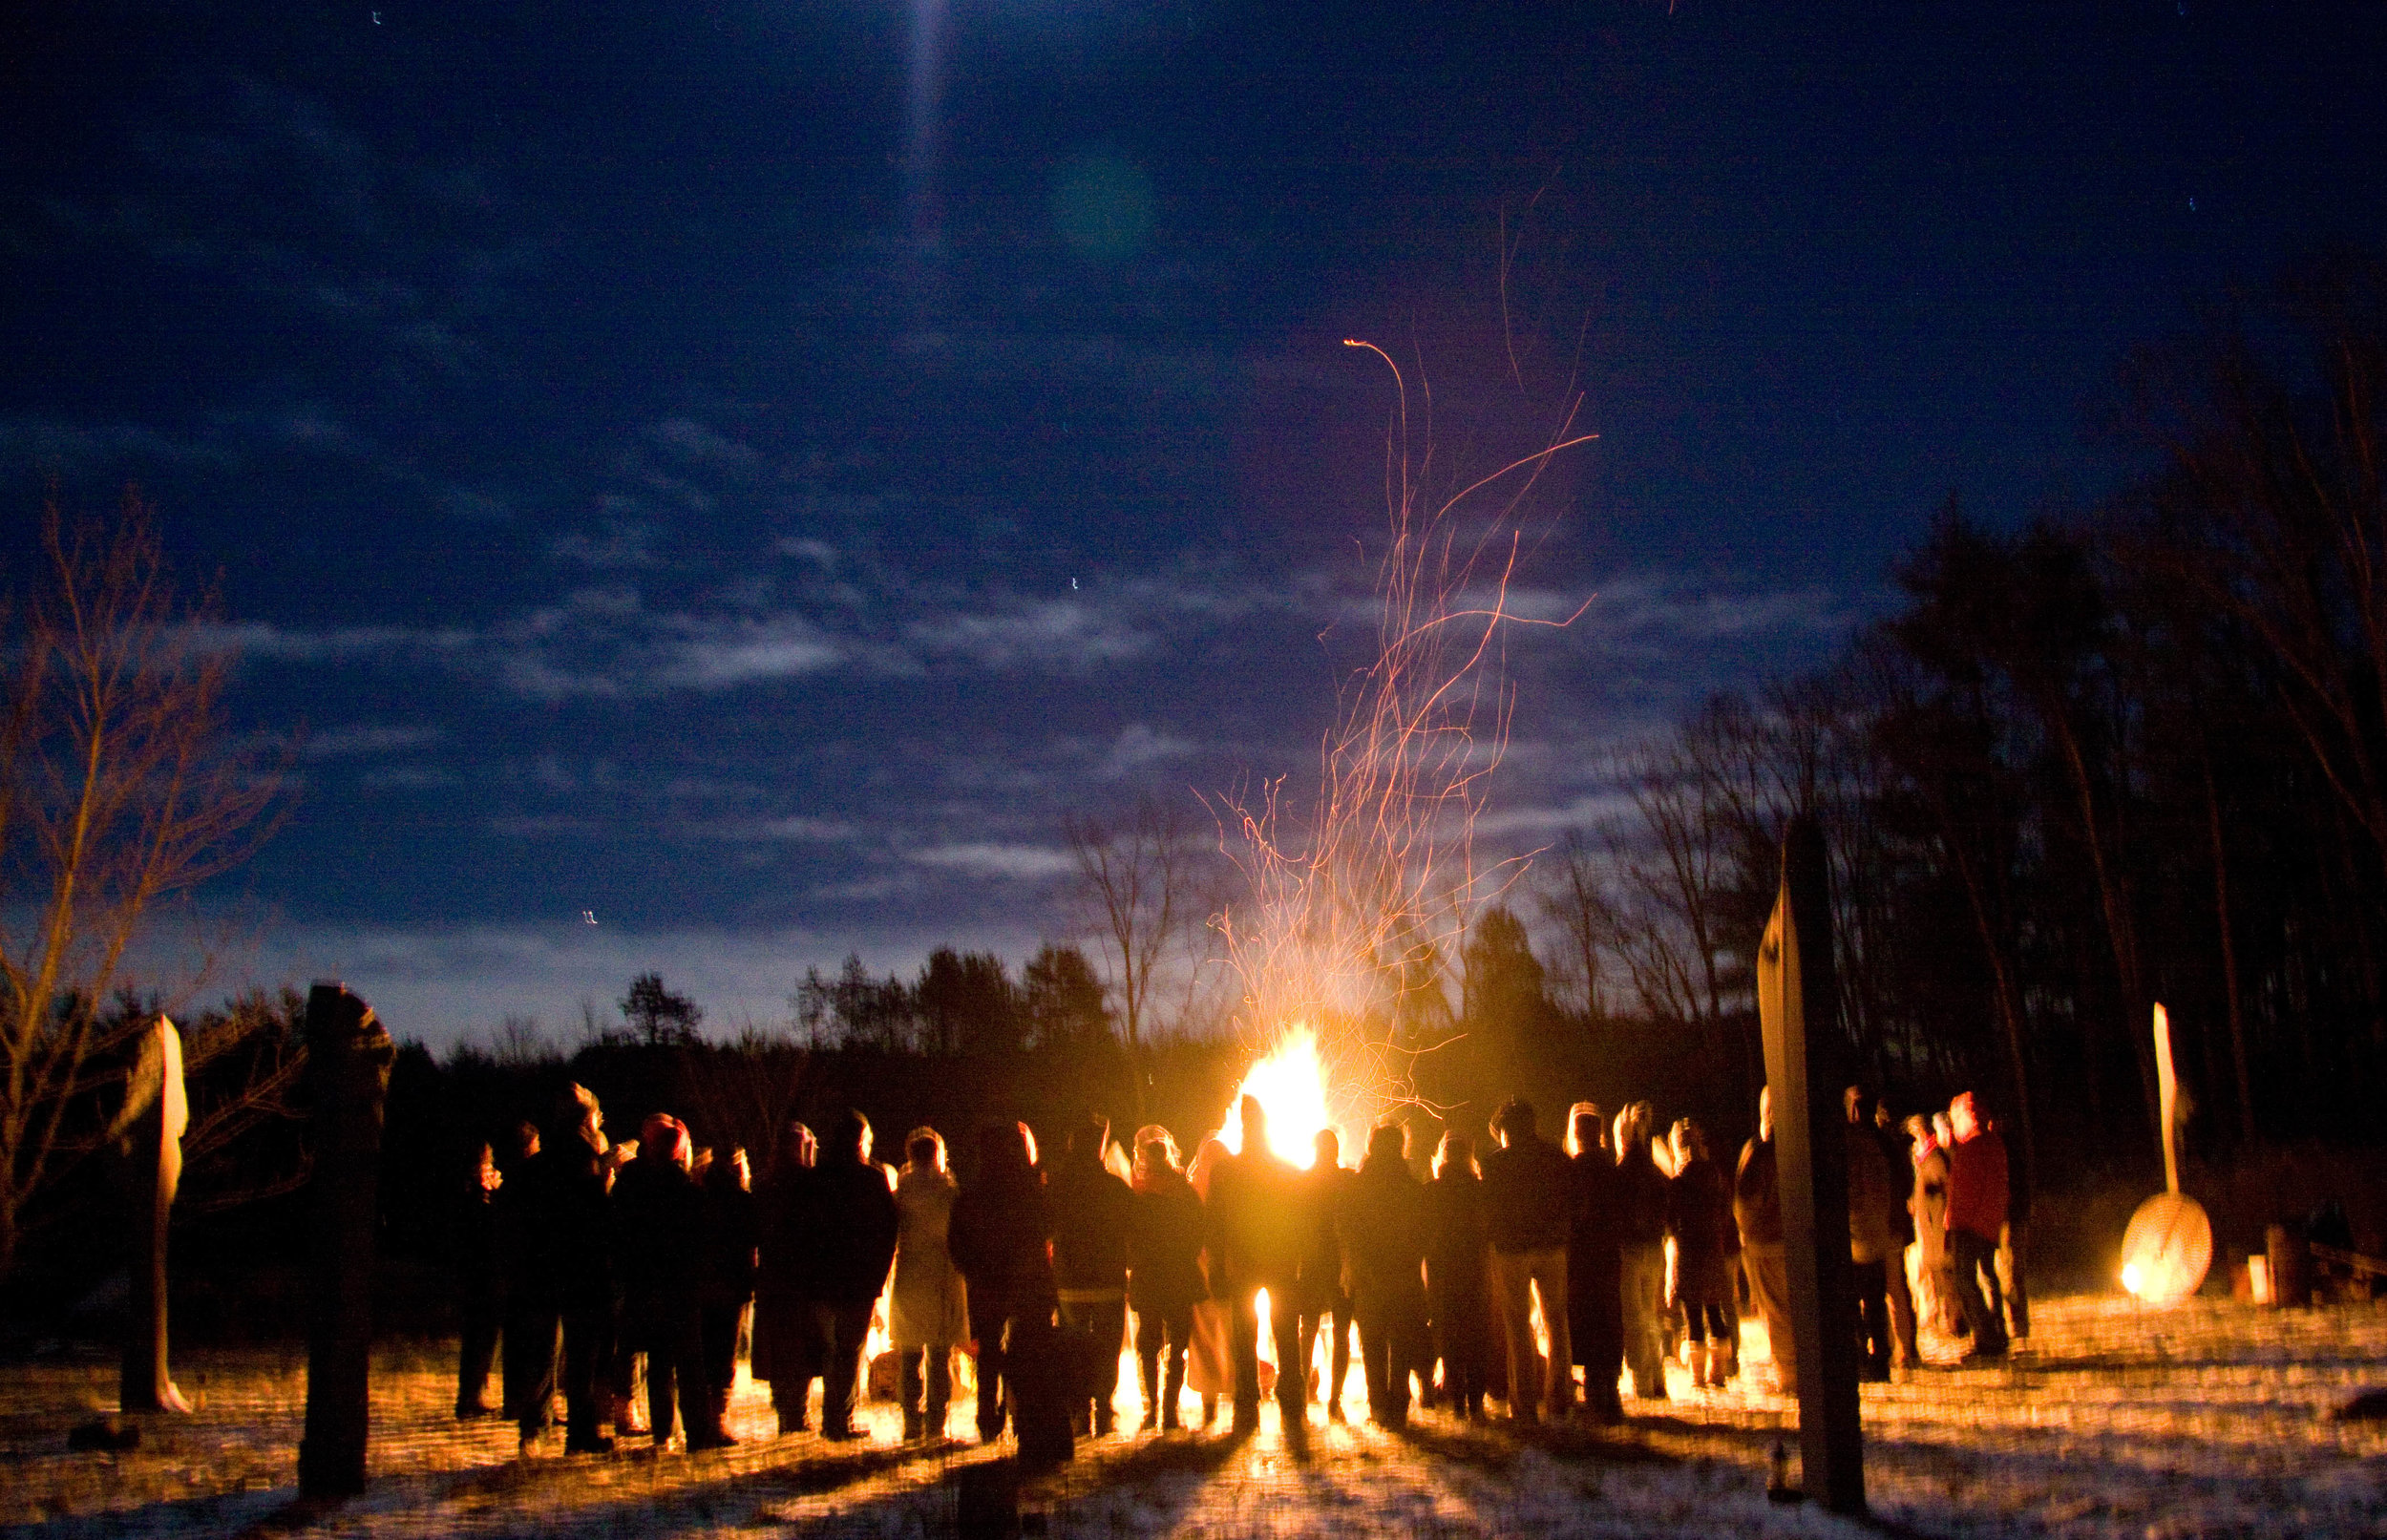 Solstice Fire, Old Frog Pond Farm, photo: Alexis Pappis